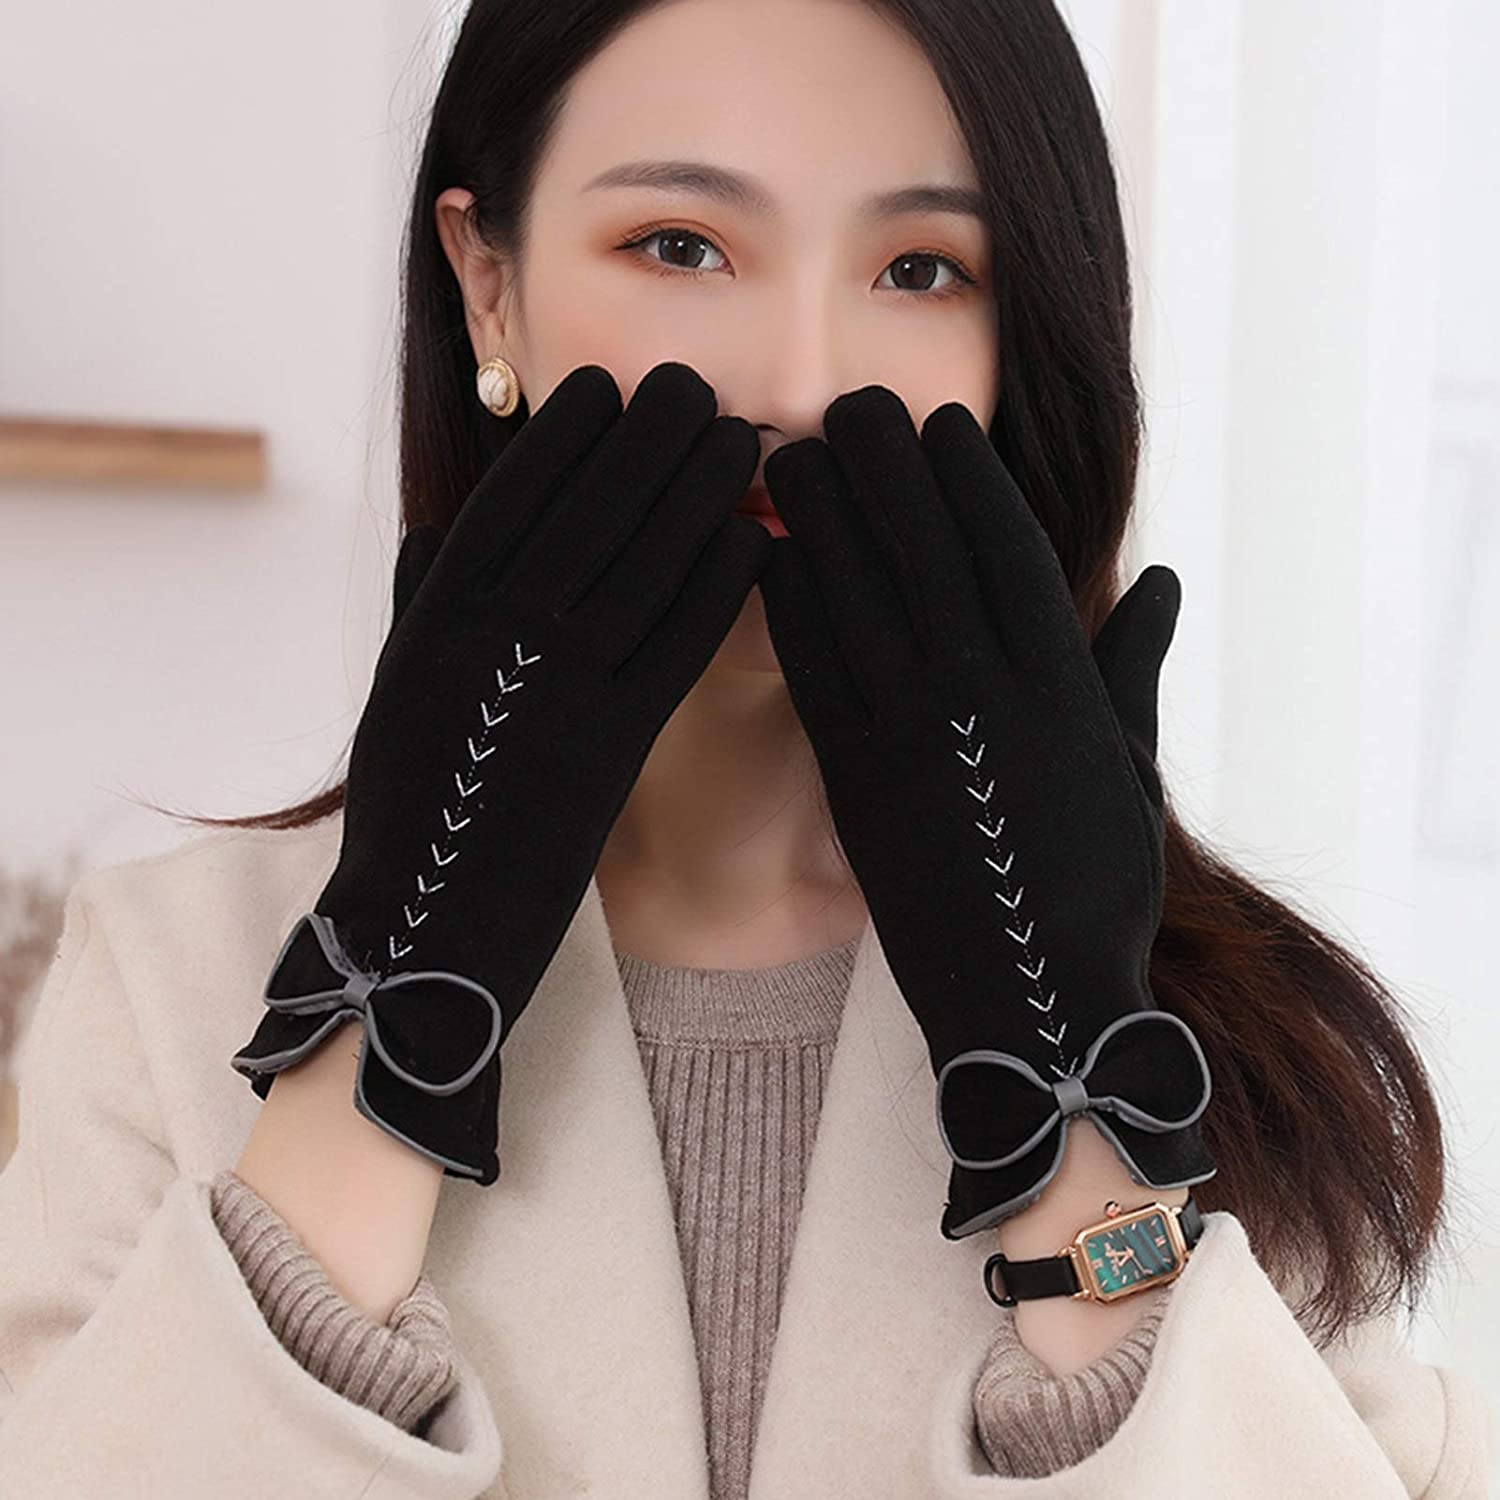 FOLDING Gloves Women's Winter Warm Gloves, with Sensitive Touch Screen for Texting Fingers, Lined with Windproof Gloves (Color : Black)